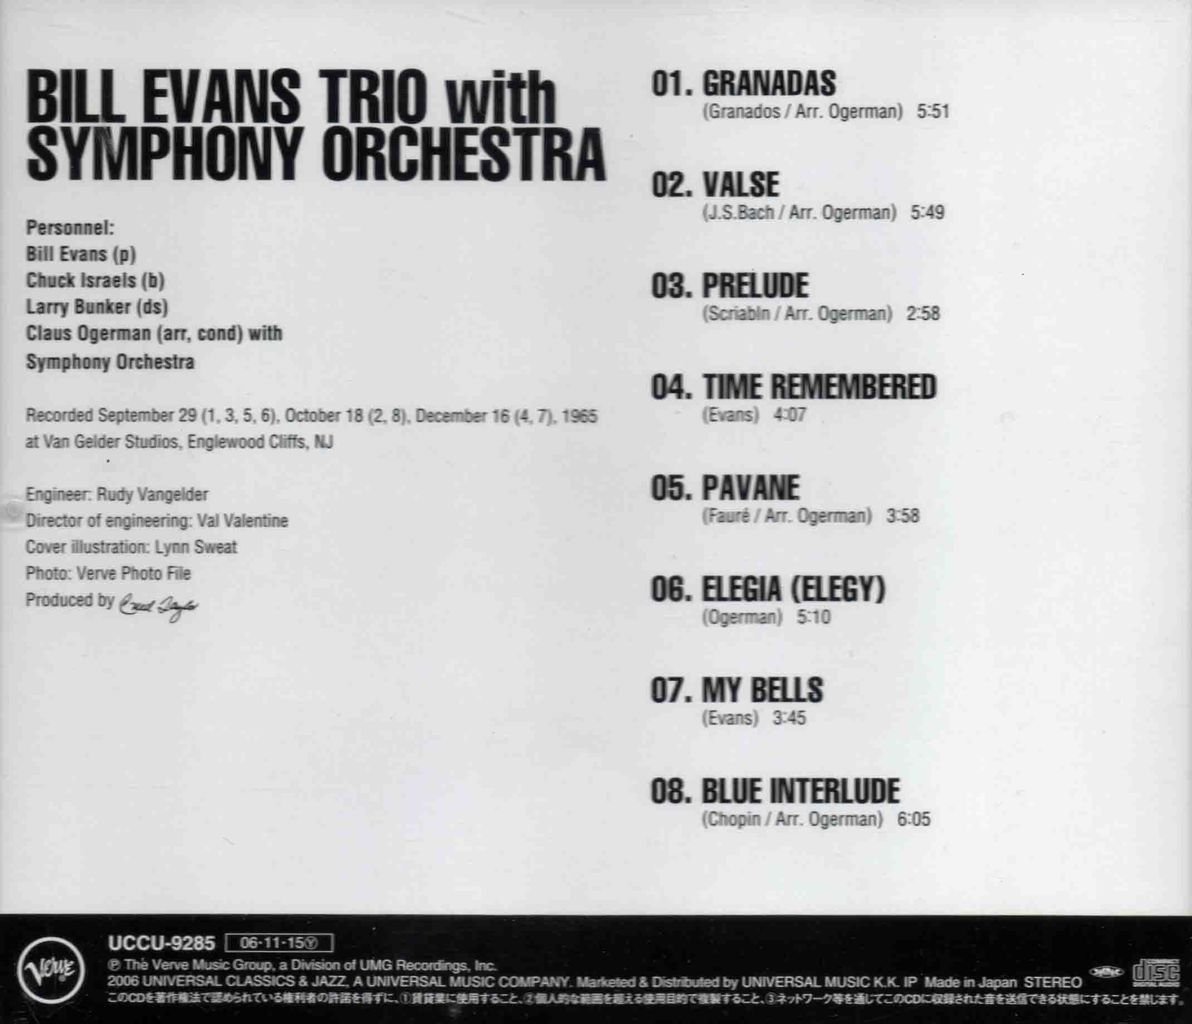 BILL EVANS TRIO WITH SYMPHONY ORCHESTRA-2